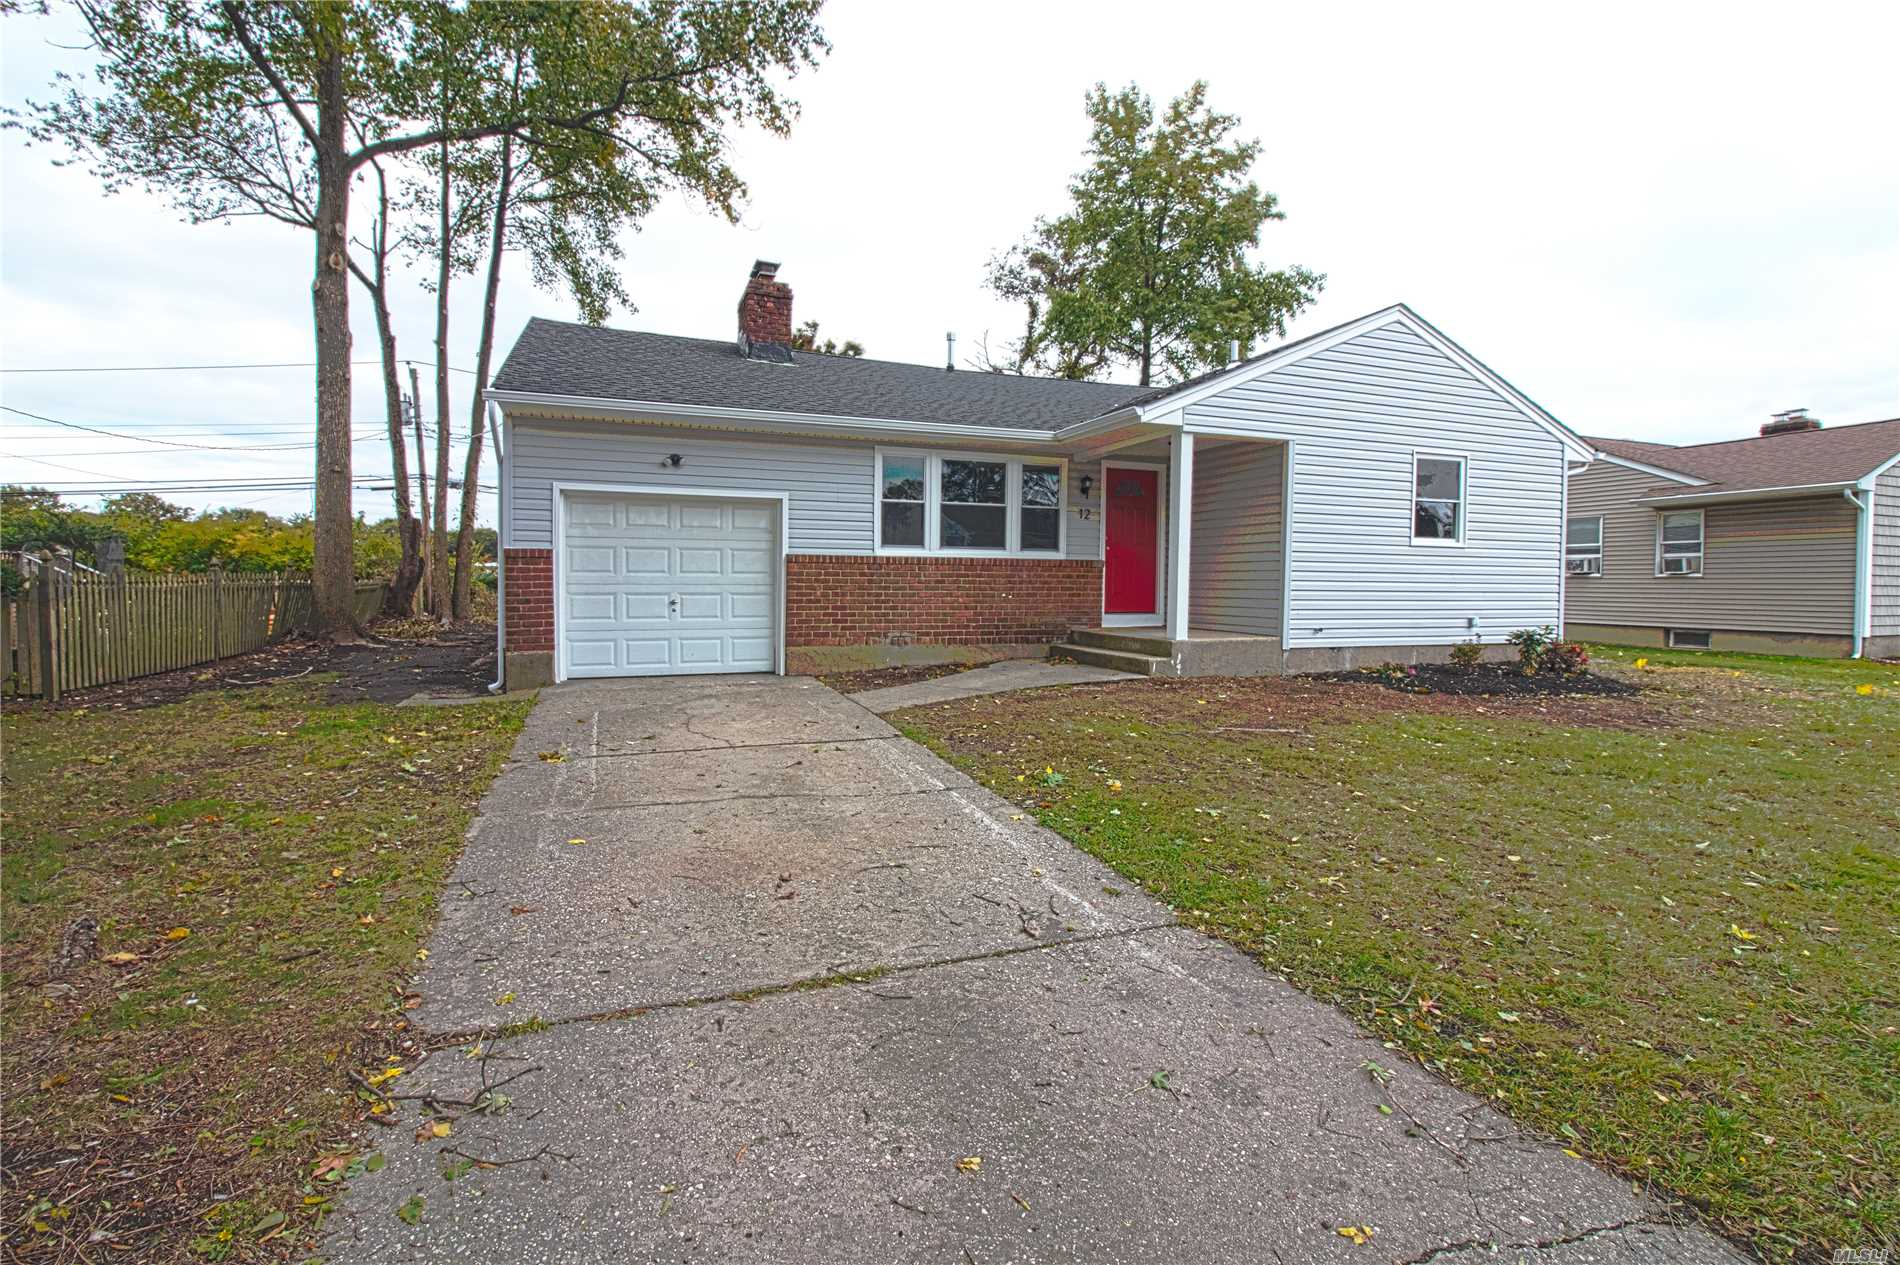 Totally Renovated 3 Bedroom 2 Bathroom Ranch. Open Floor Plan, Living Room, Dining Room, Kitchen With Stainless Steel Appliances. One Car Garage. Full Finished Basement With Full Bathroom.Gas Central Heat.New Roof And Vinyl Siding